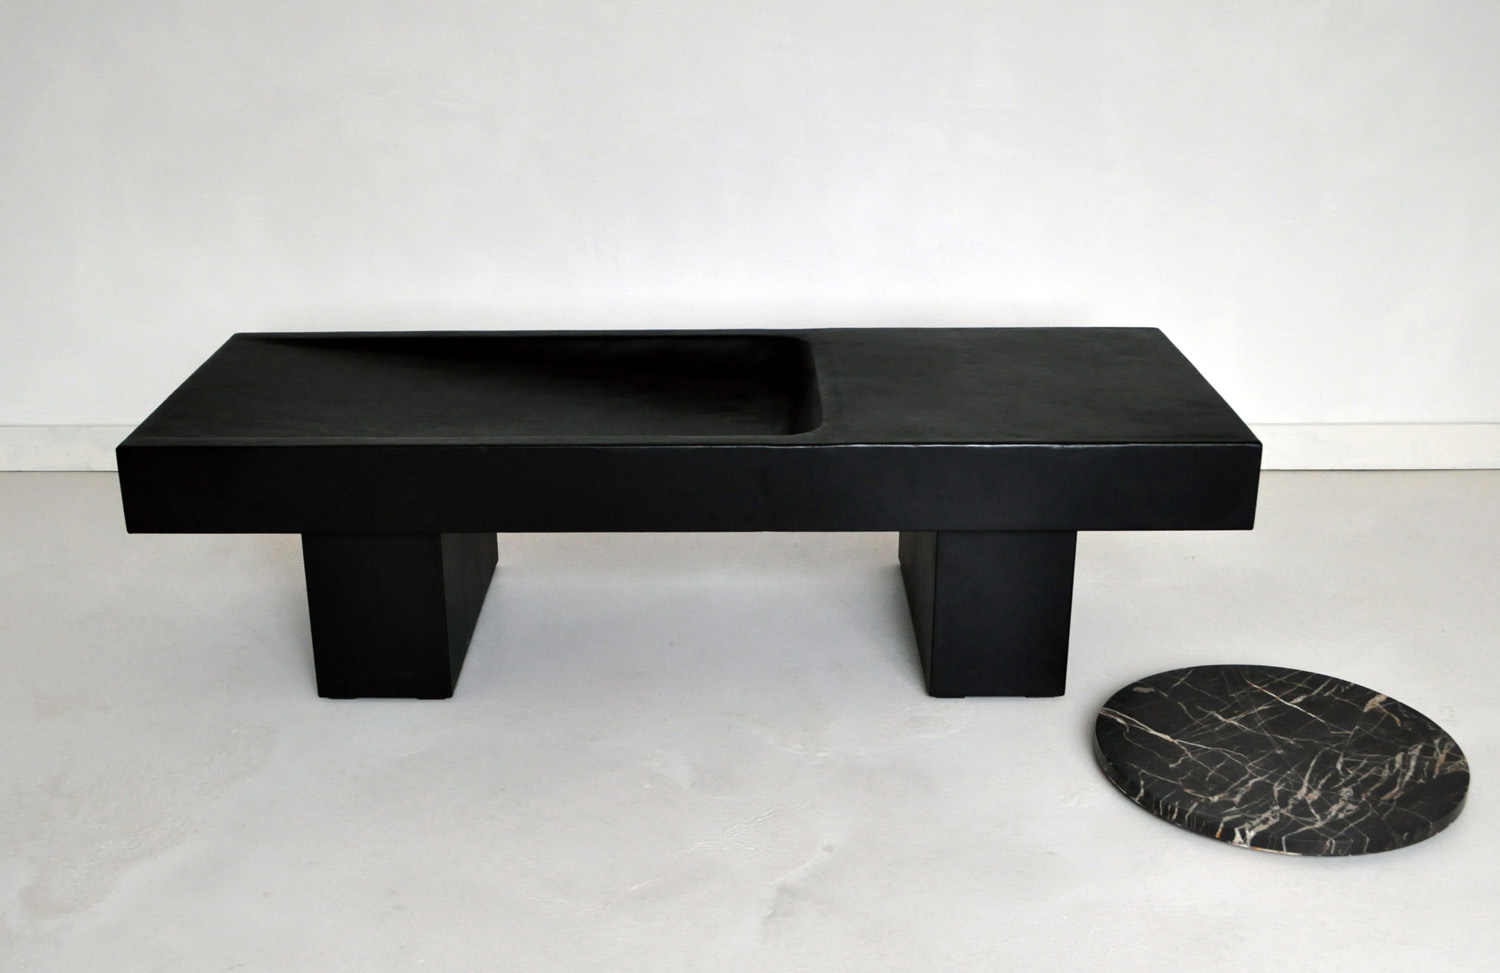 Verheyden is represented in the UK by the Willer gallery in London's Kensington. Shown here is a leather clad table design and one of Verheyden's stone bowls.